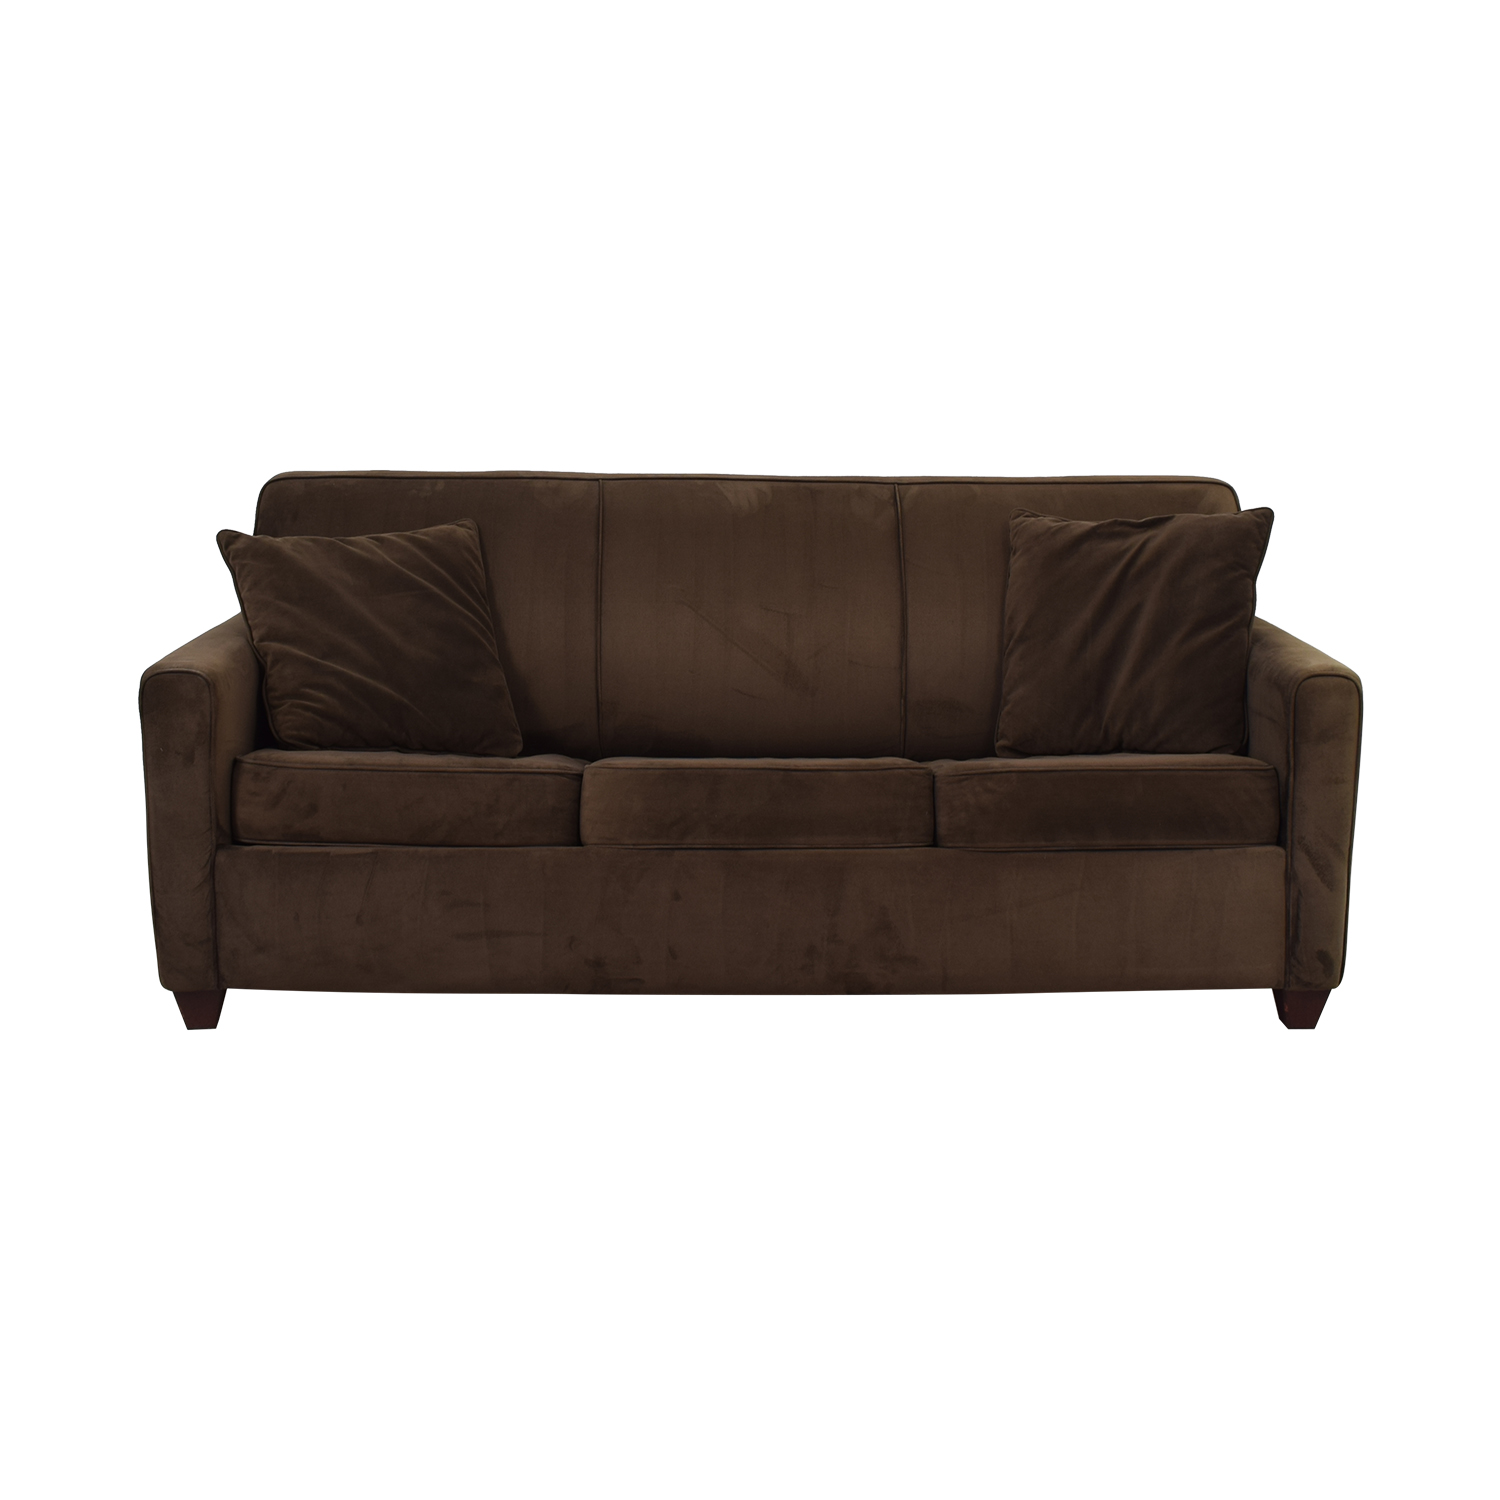 Raymour & Flanigan Raymour & Flanigan Three Cushion Sleeper Sofa